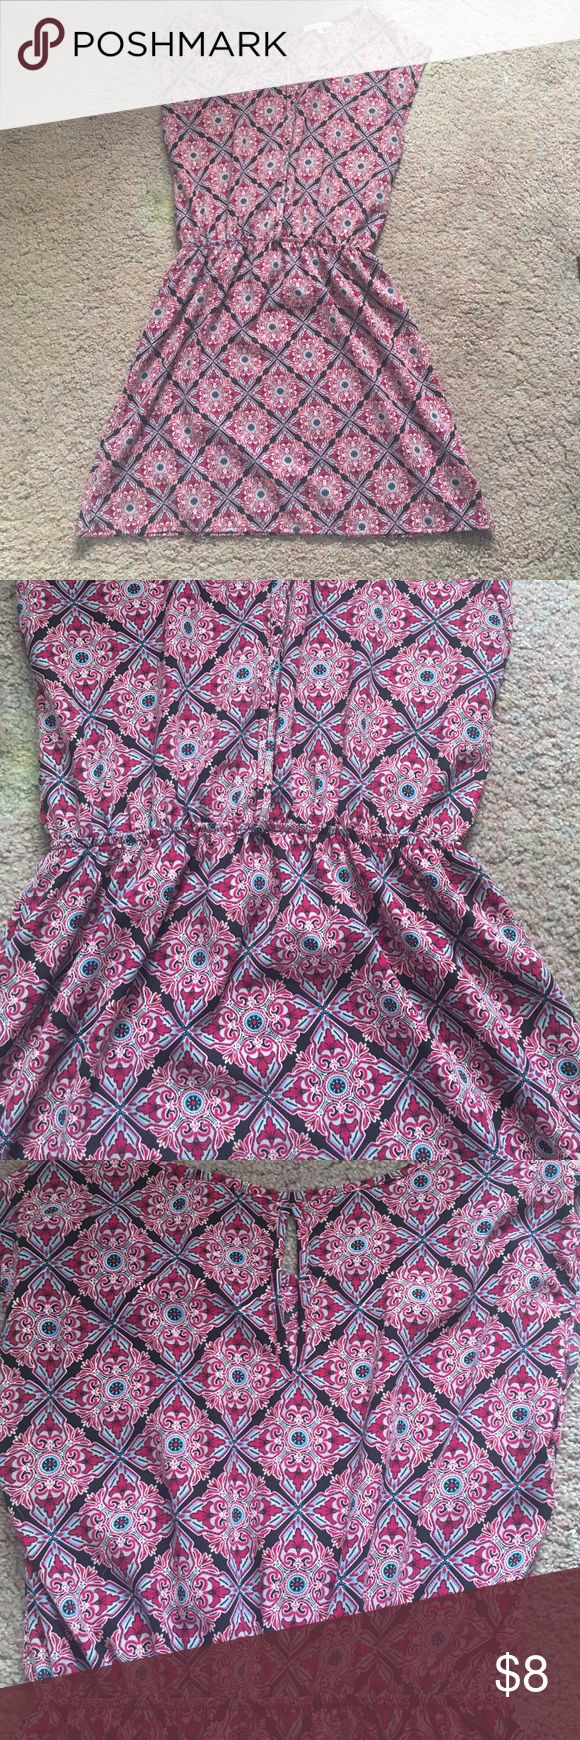 Charlotte Russe Printed Dress This dress is perfect for an event! It's has great colors, get light weight and has a nice flow. It has cut off sleeves and sinches at the waist giving you a nice curve! Charlotte Russe Dresses